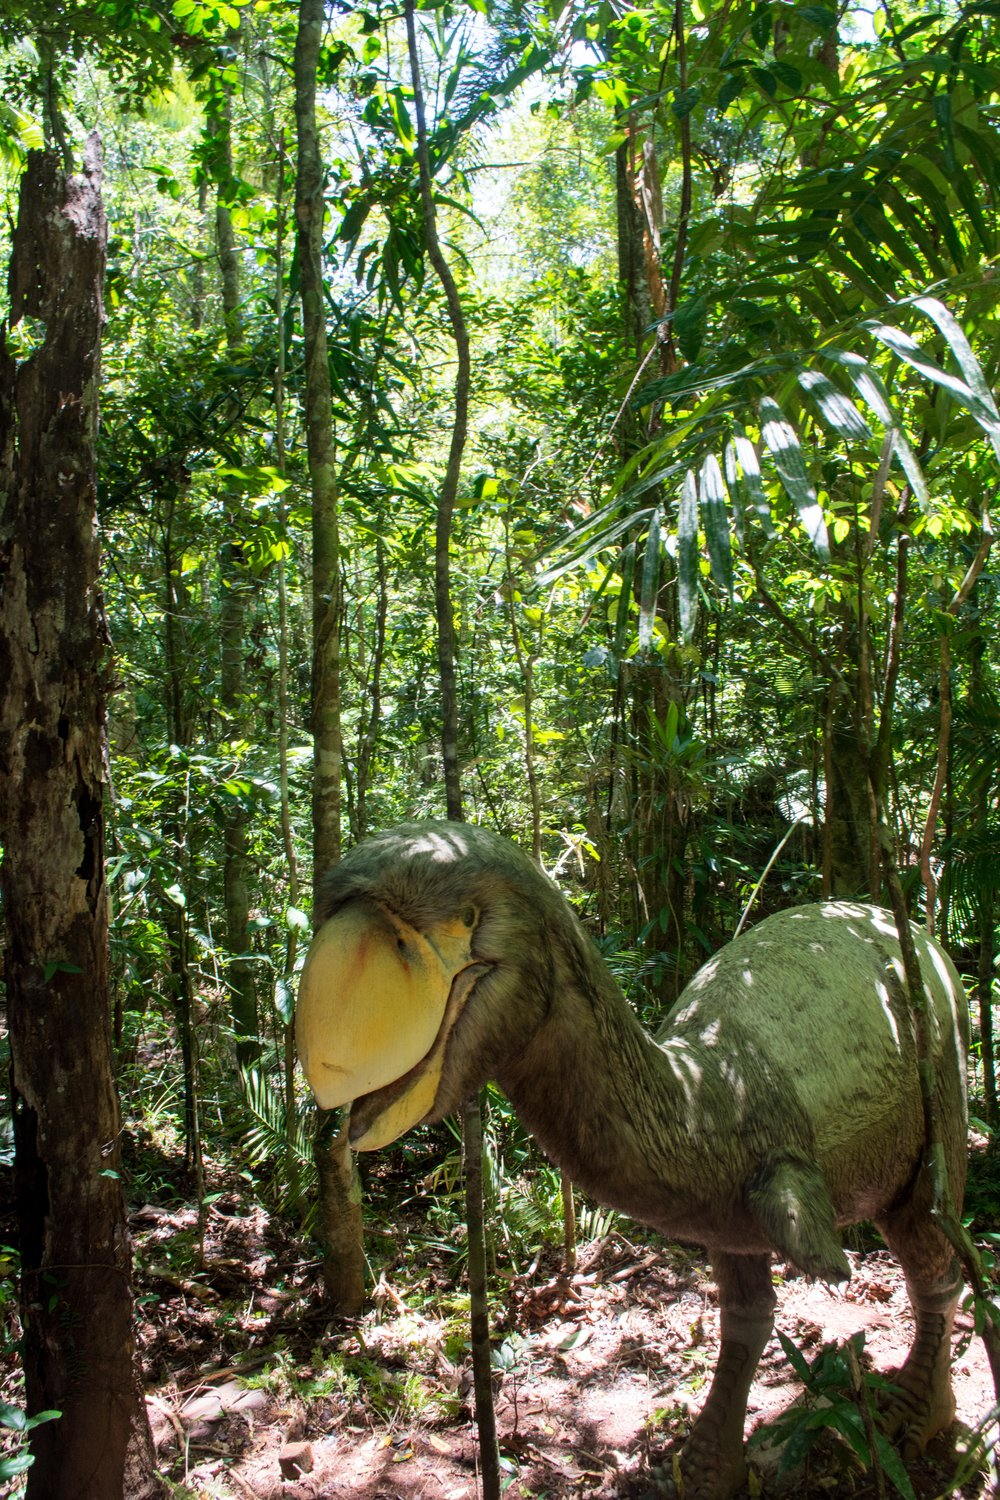 Daintree Discovery Centre – Australia